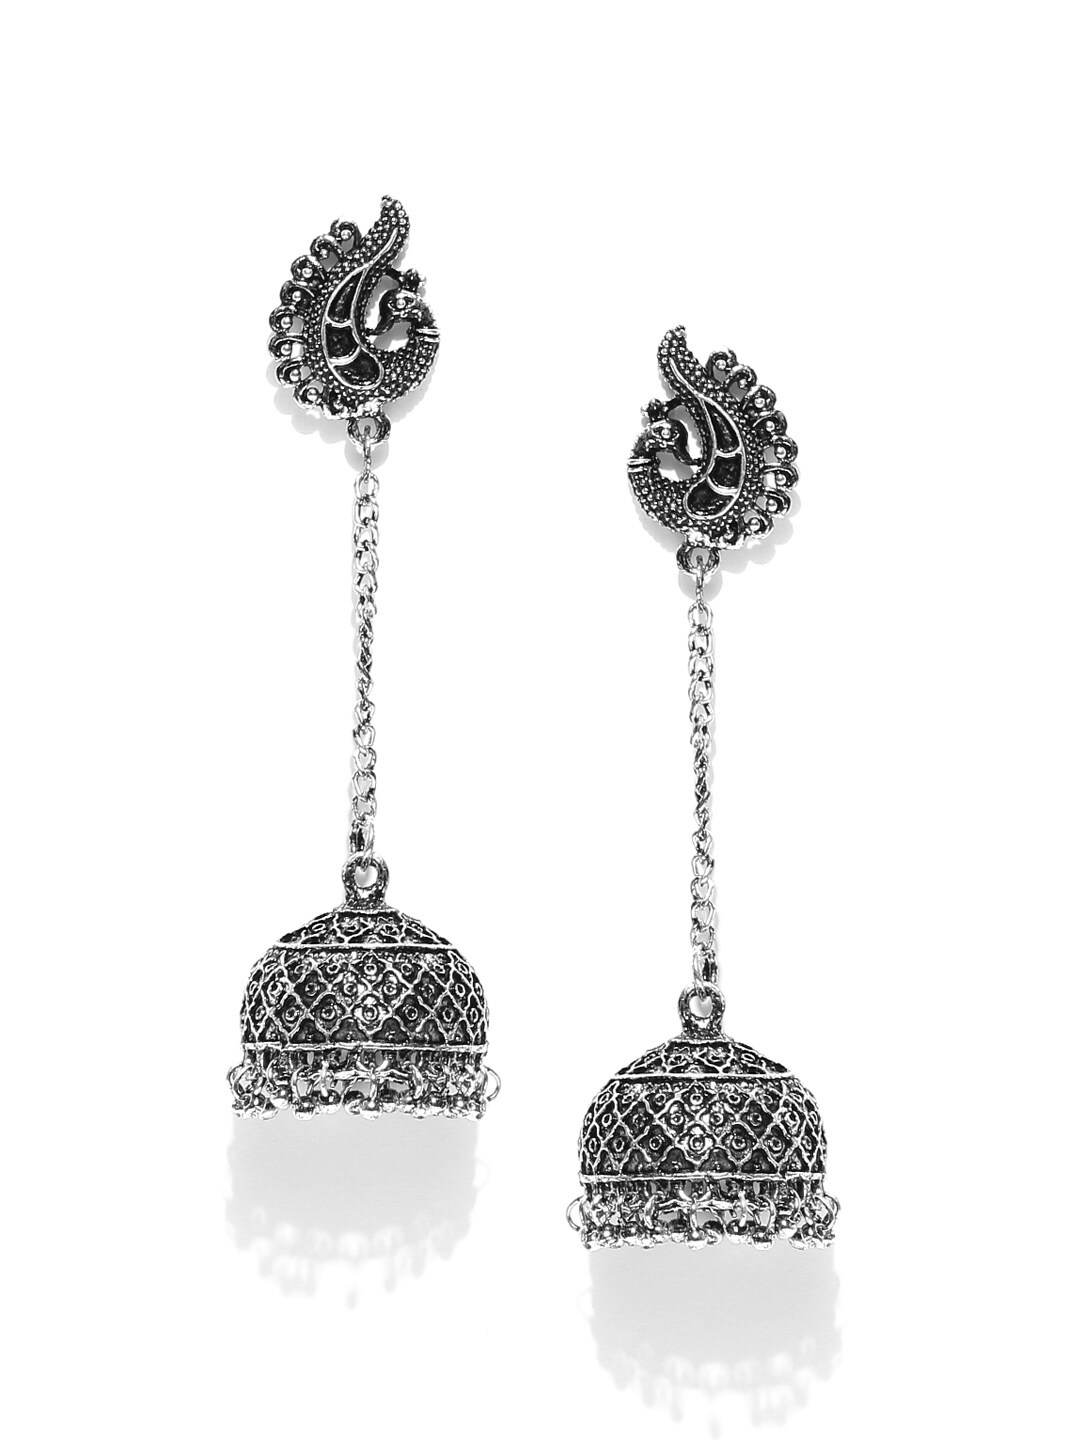 a4a8cc881 Kashmiri Jhumka Earrings Necklace - Buy Kashmiri Jhumka Earrings Necklace  online in India